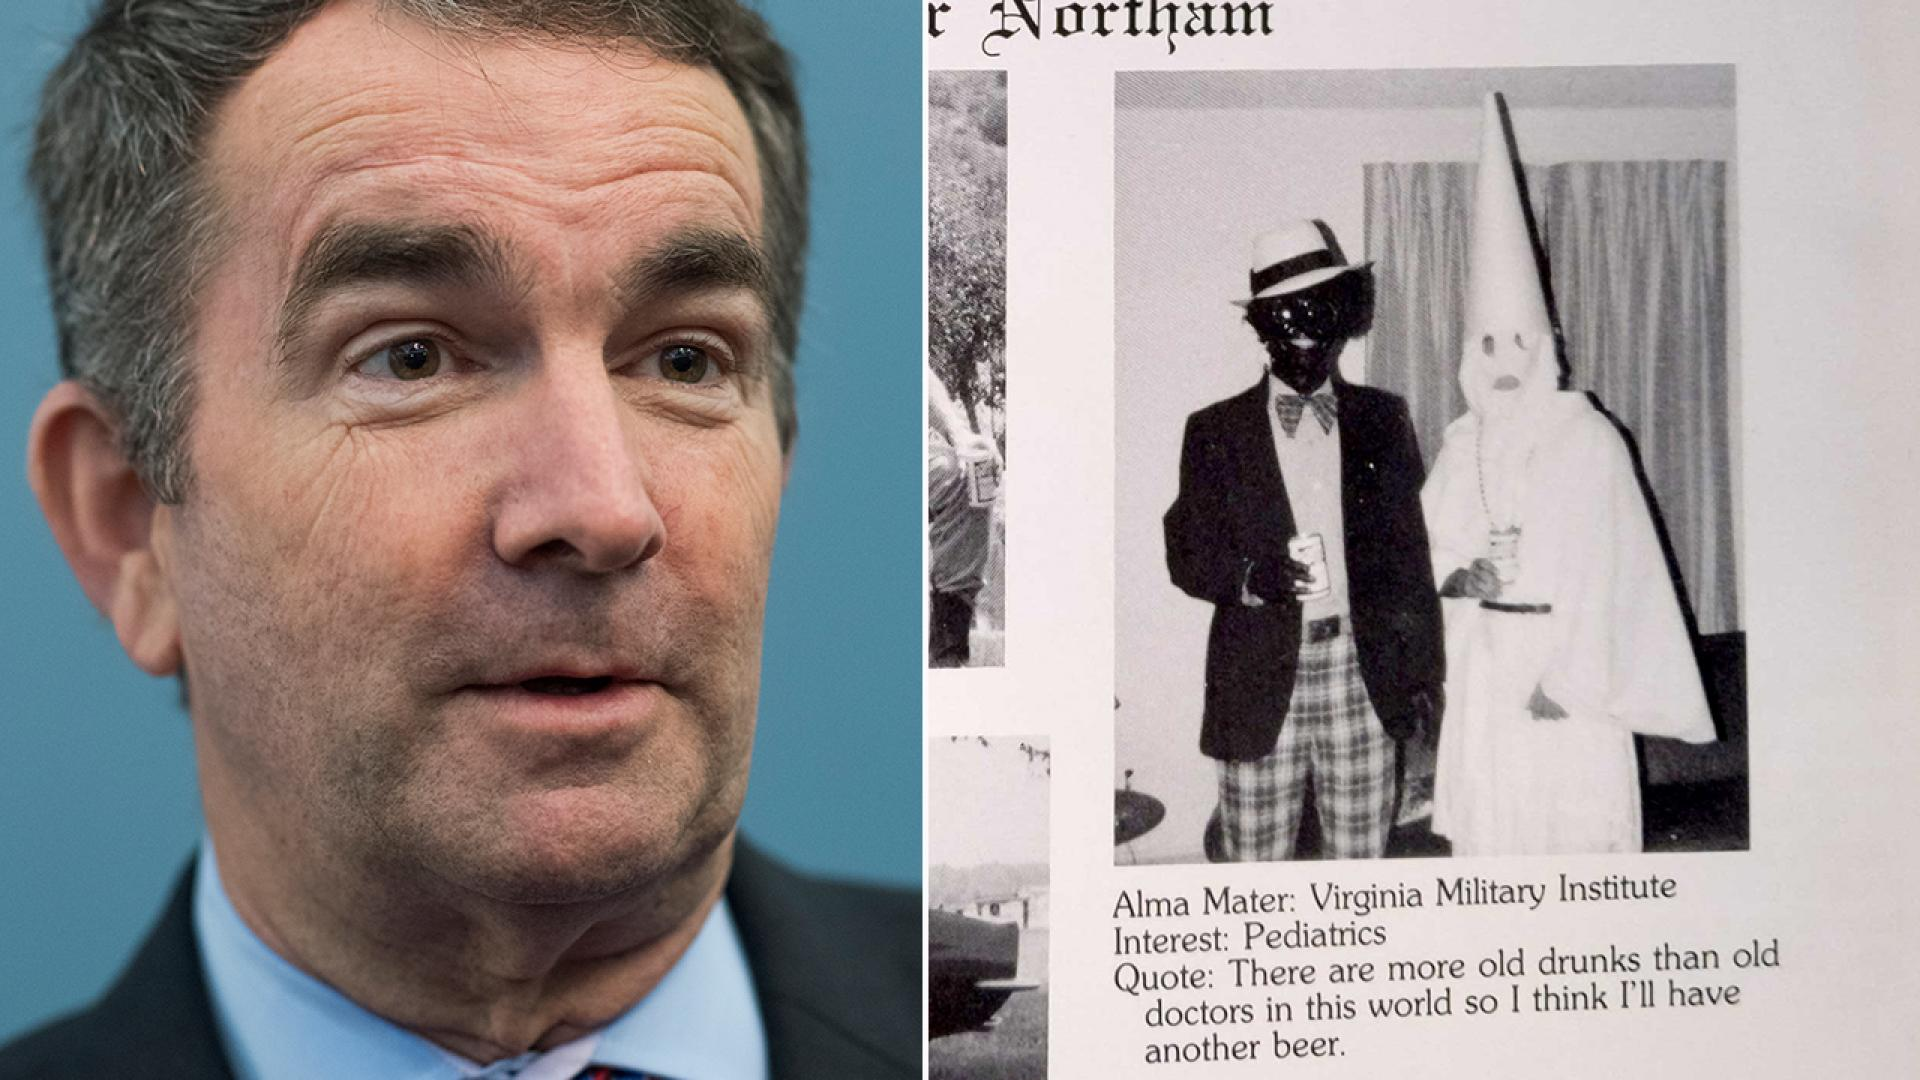 Virginia Gov. Ralph Northam apologized Friday for a photo onhismedical school yearbook page that depicts two people, one in blackface, the other in a Ku Klux Klan robe.